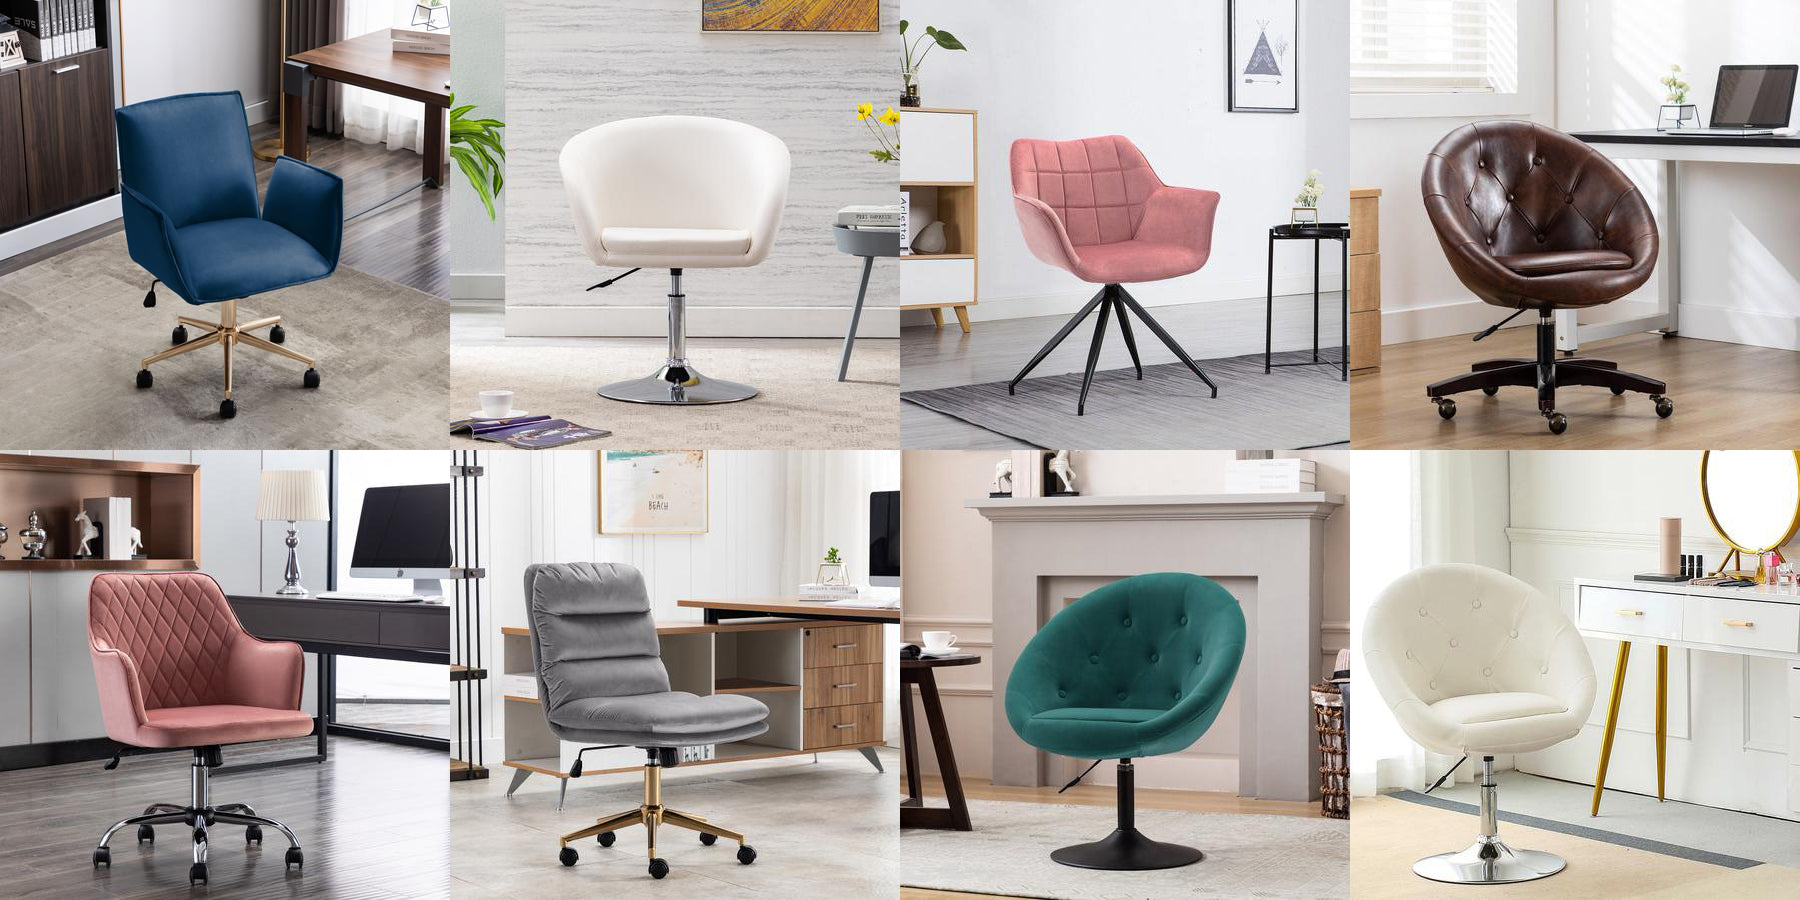 Duhome home office chair collection